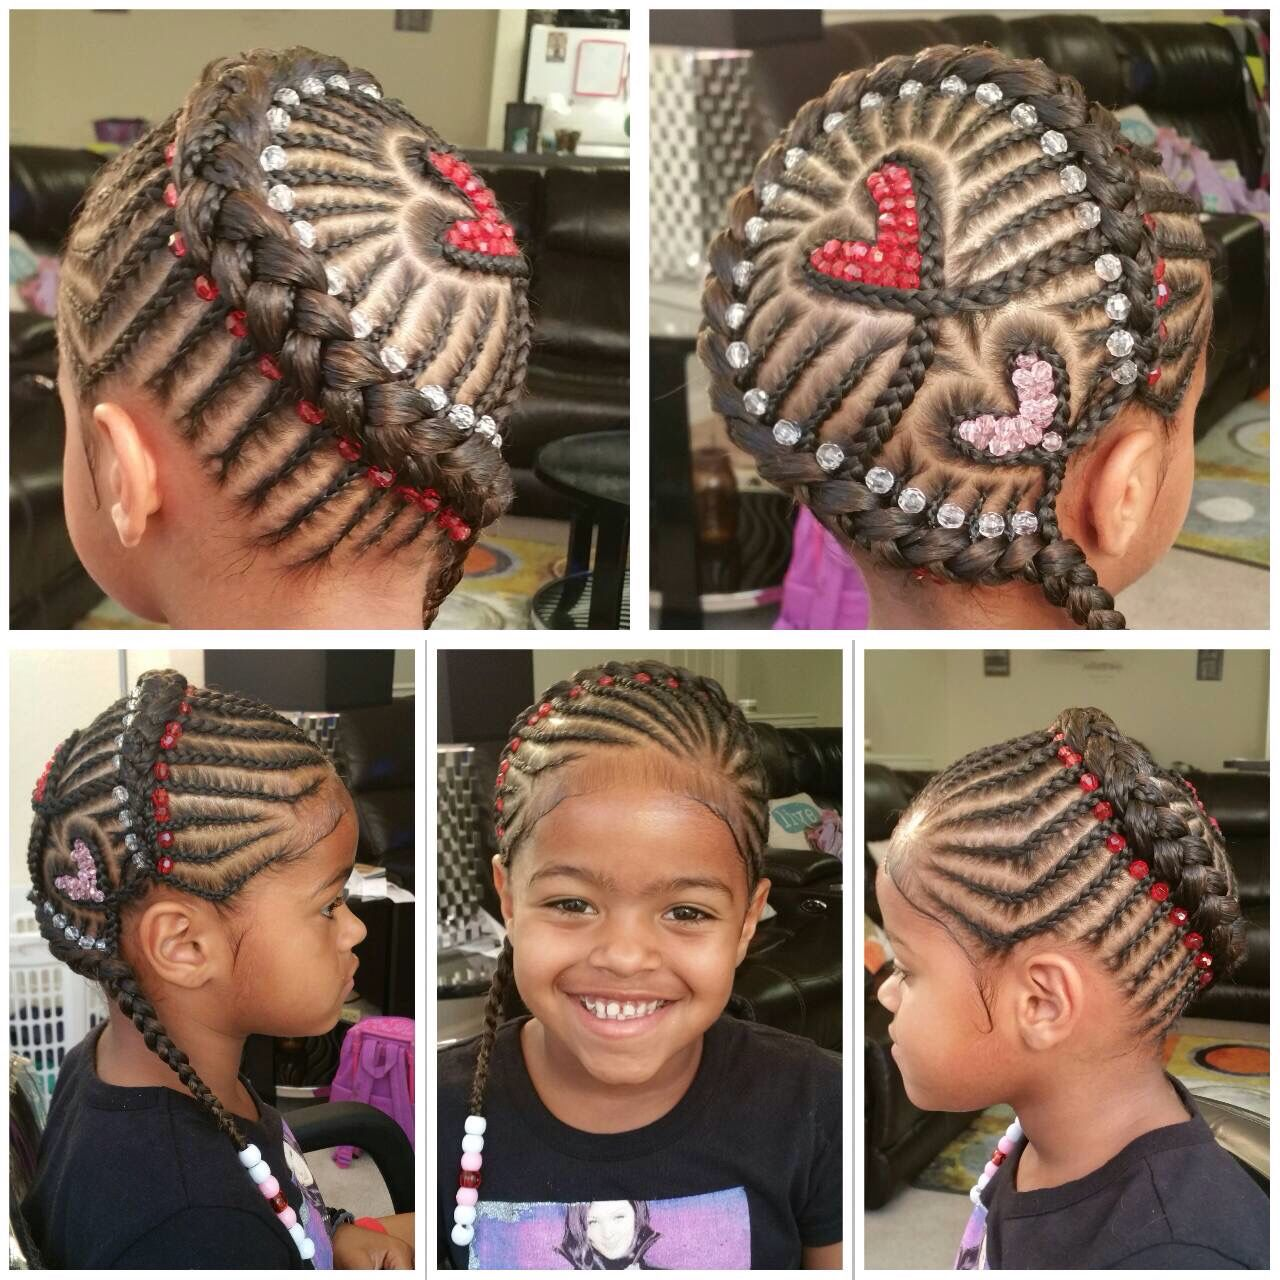 #BeadsAndBraids #LittleGirlsHair